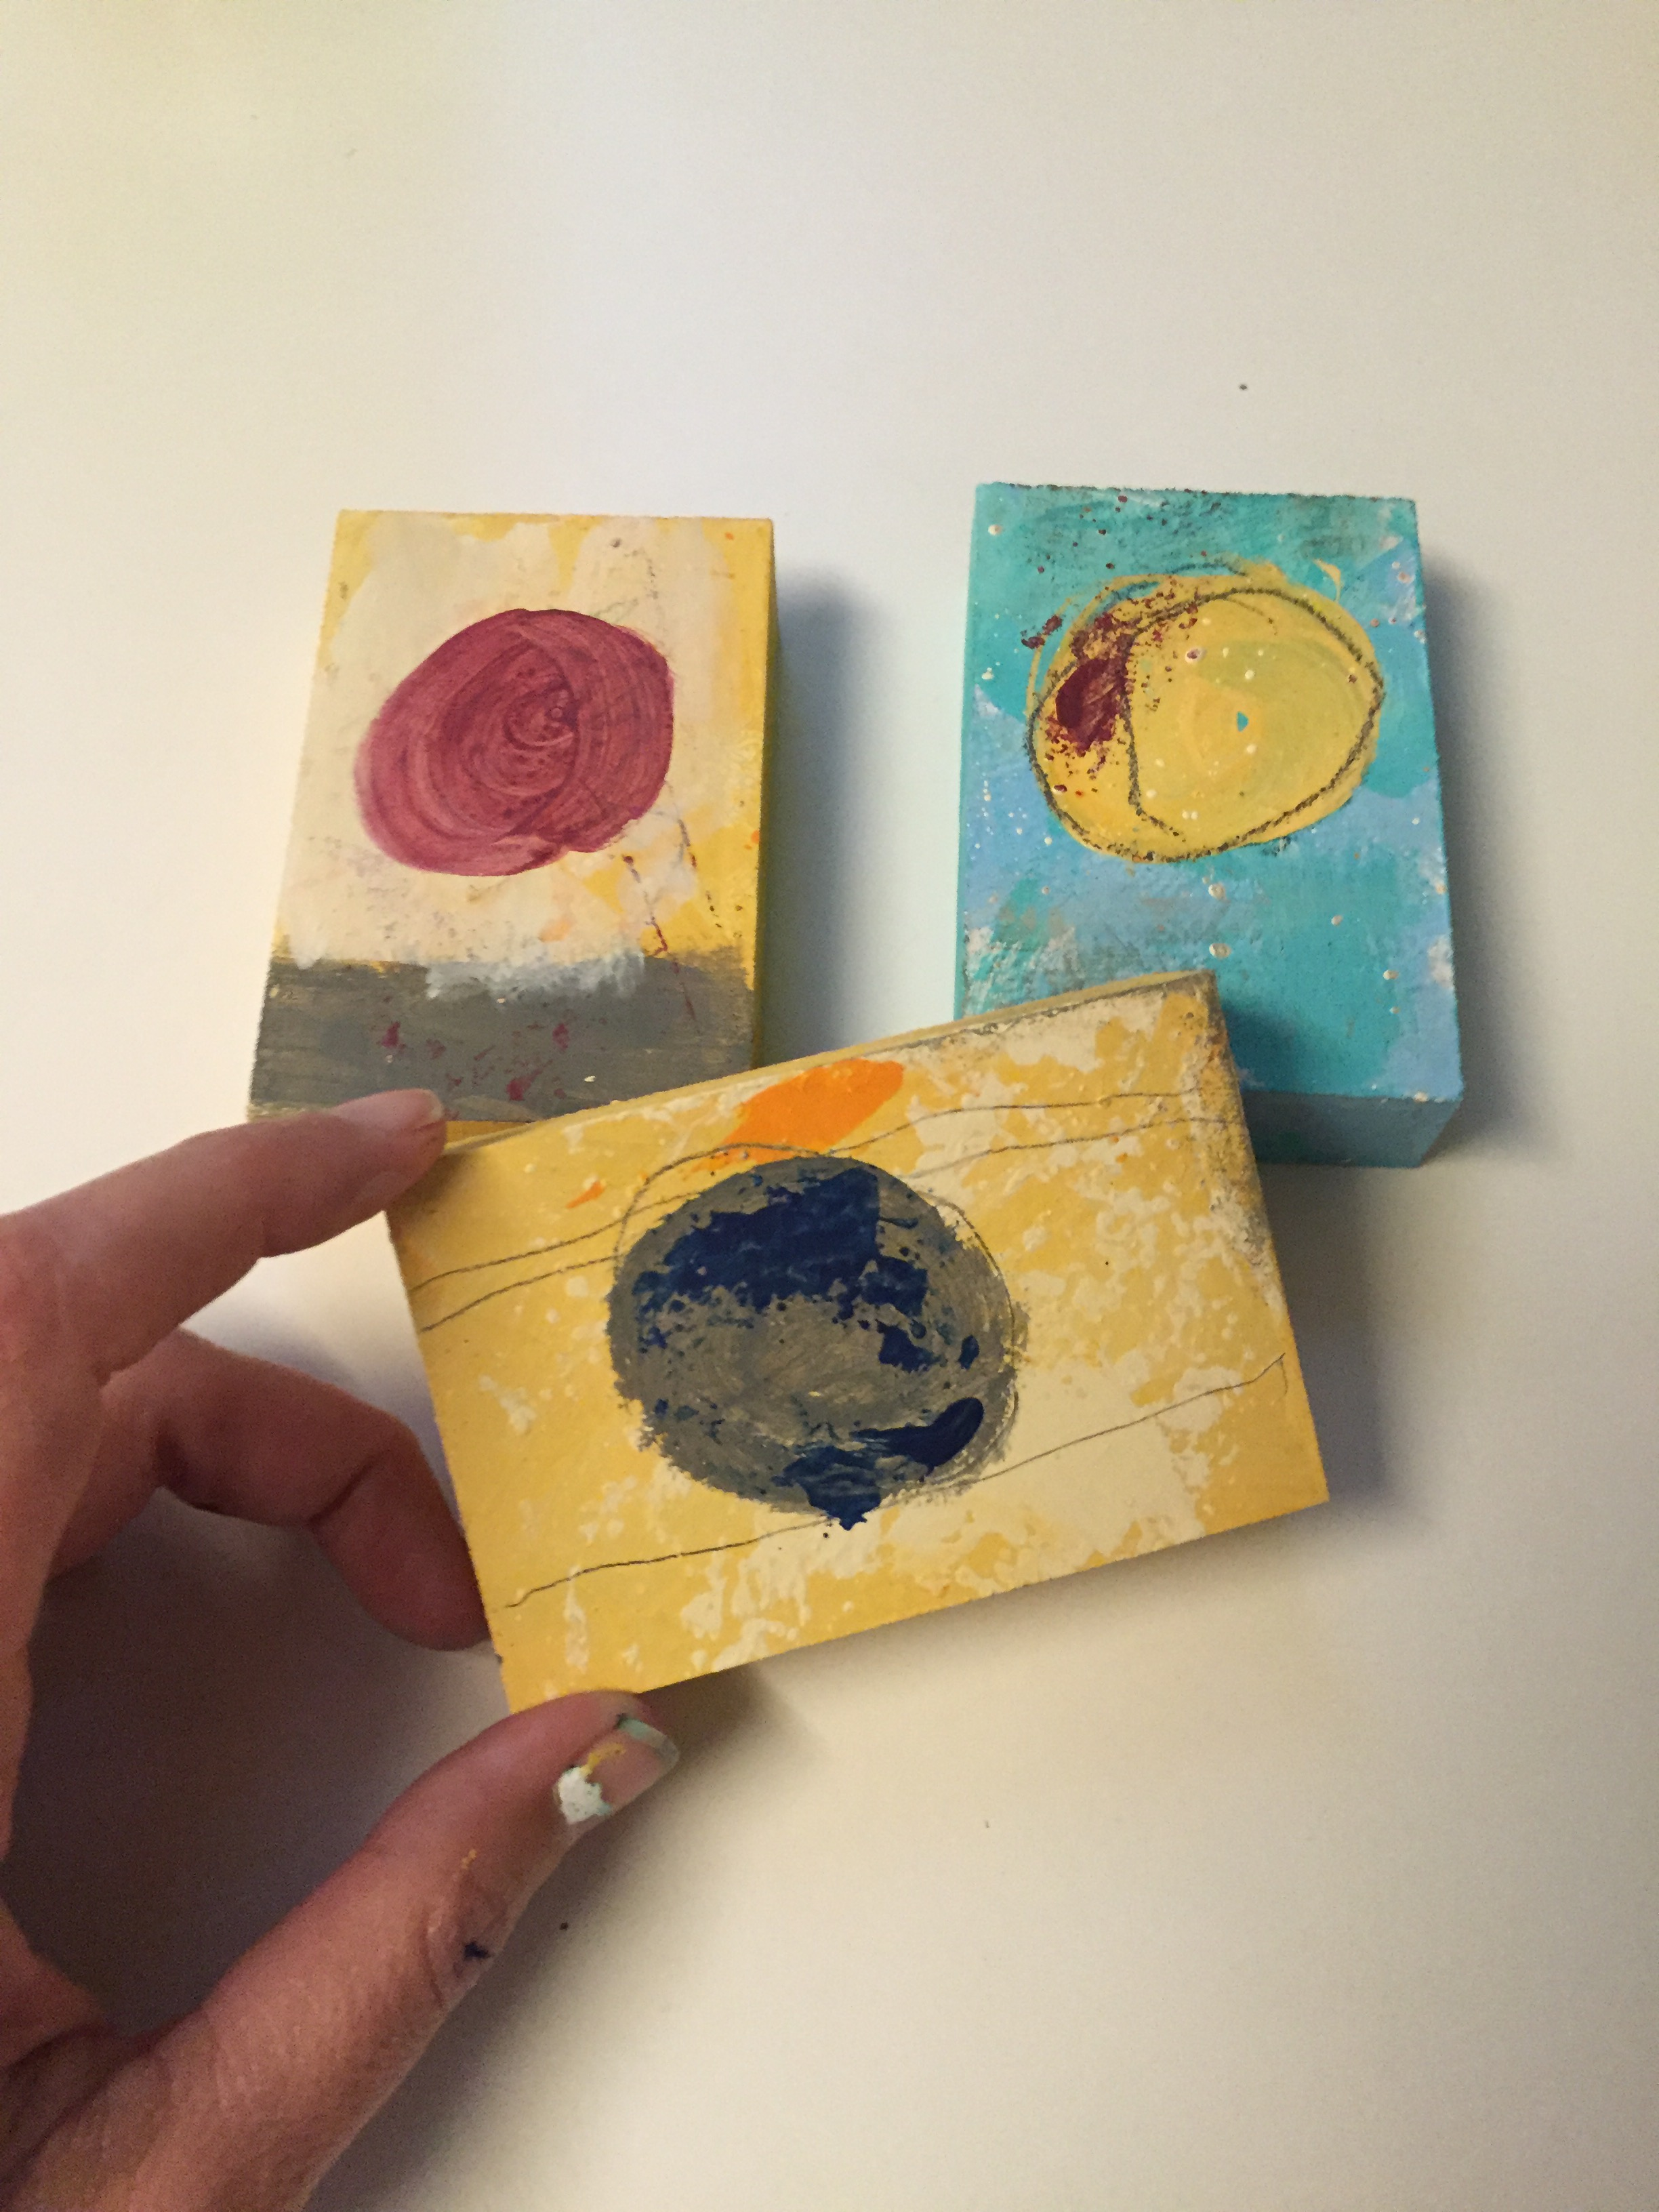 Art-O-Mat pieces in the making. Based on my 2016 circles series.